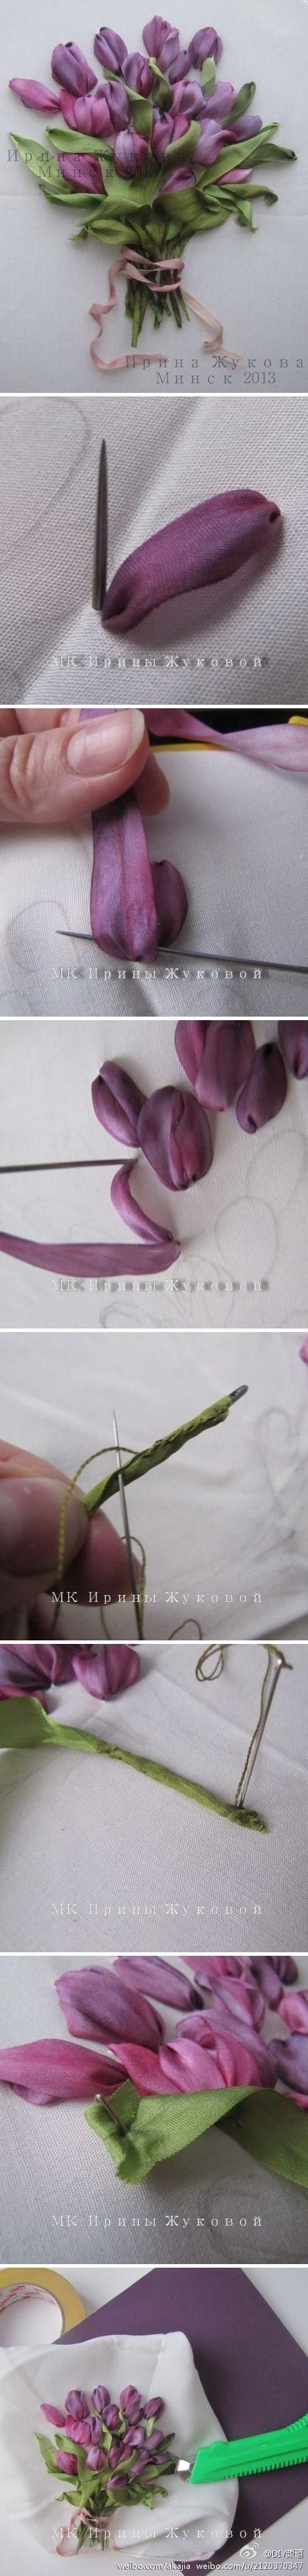 Ribbon embroidery - fabric tulips, never fade.  Too beautiful ...